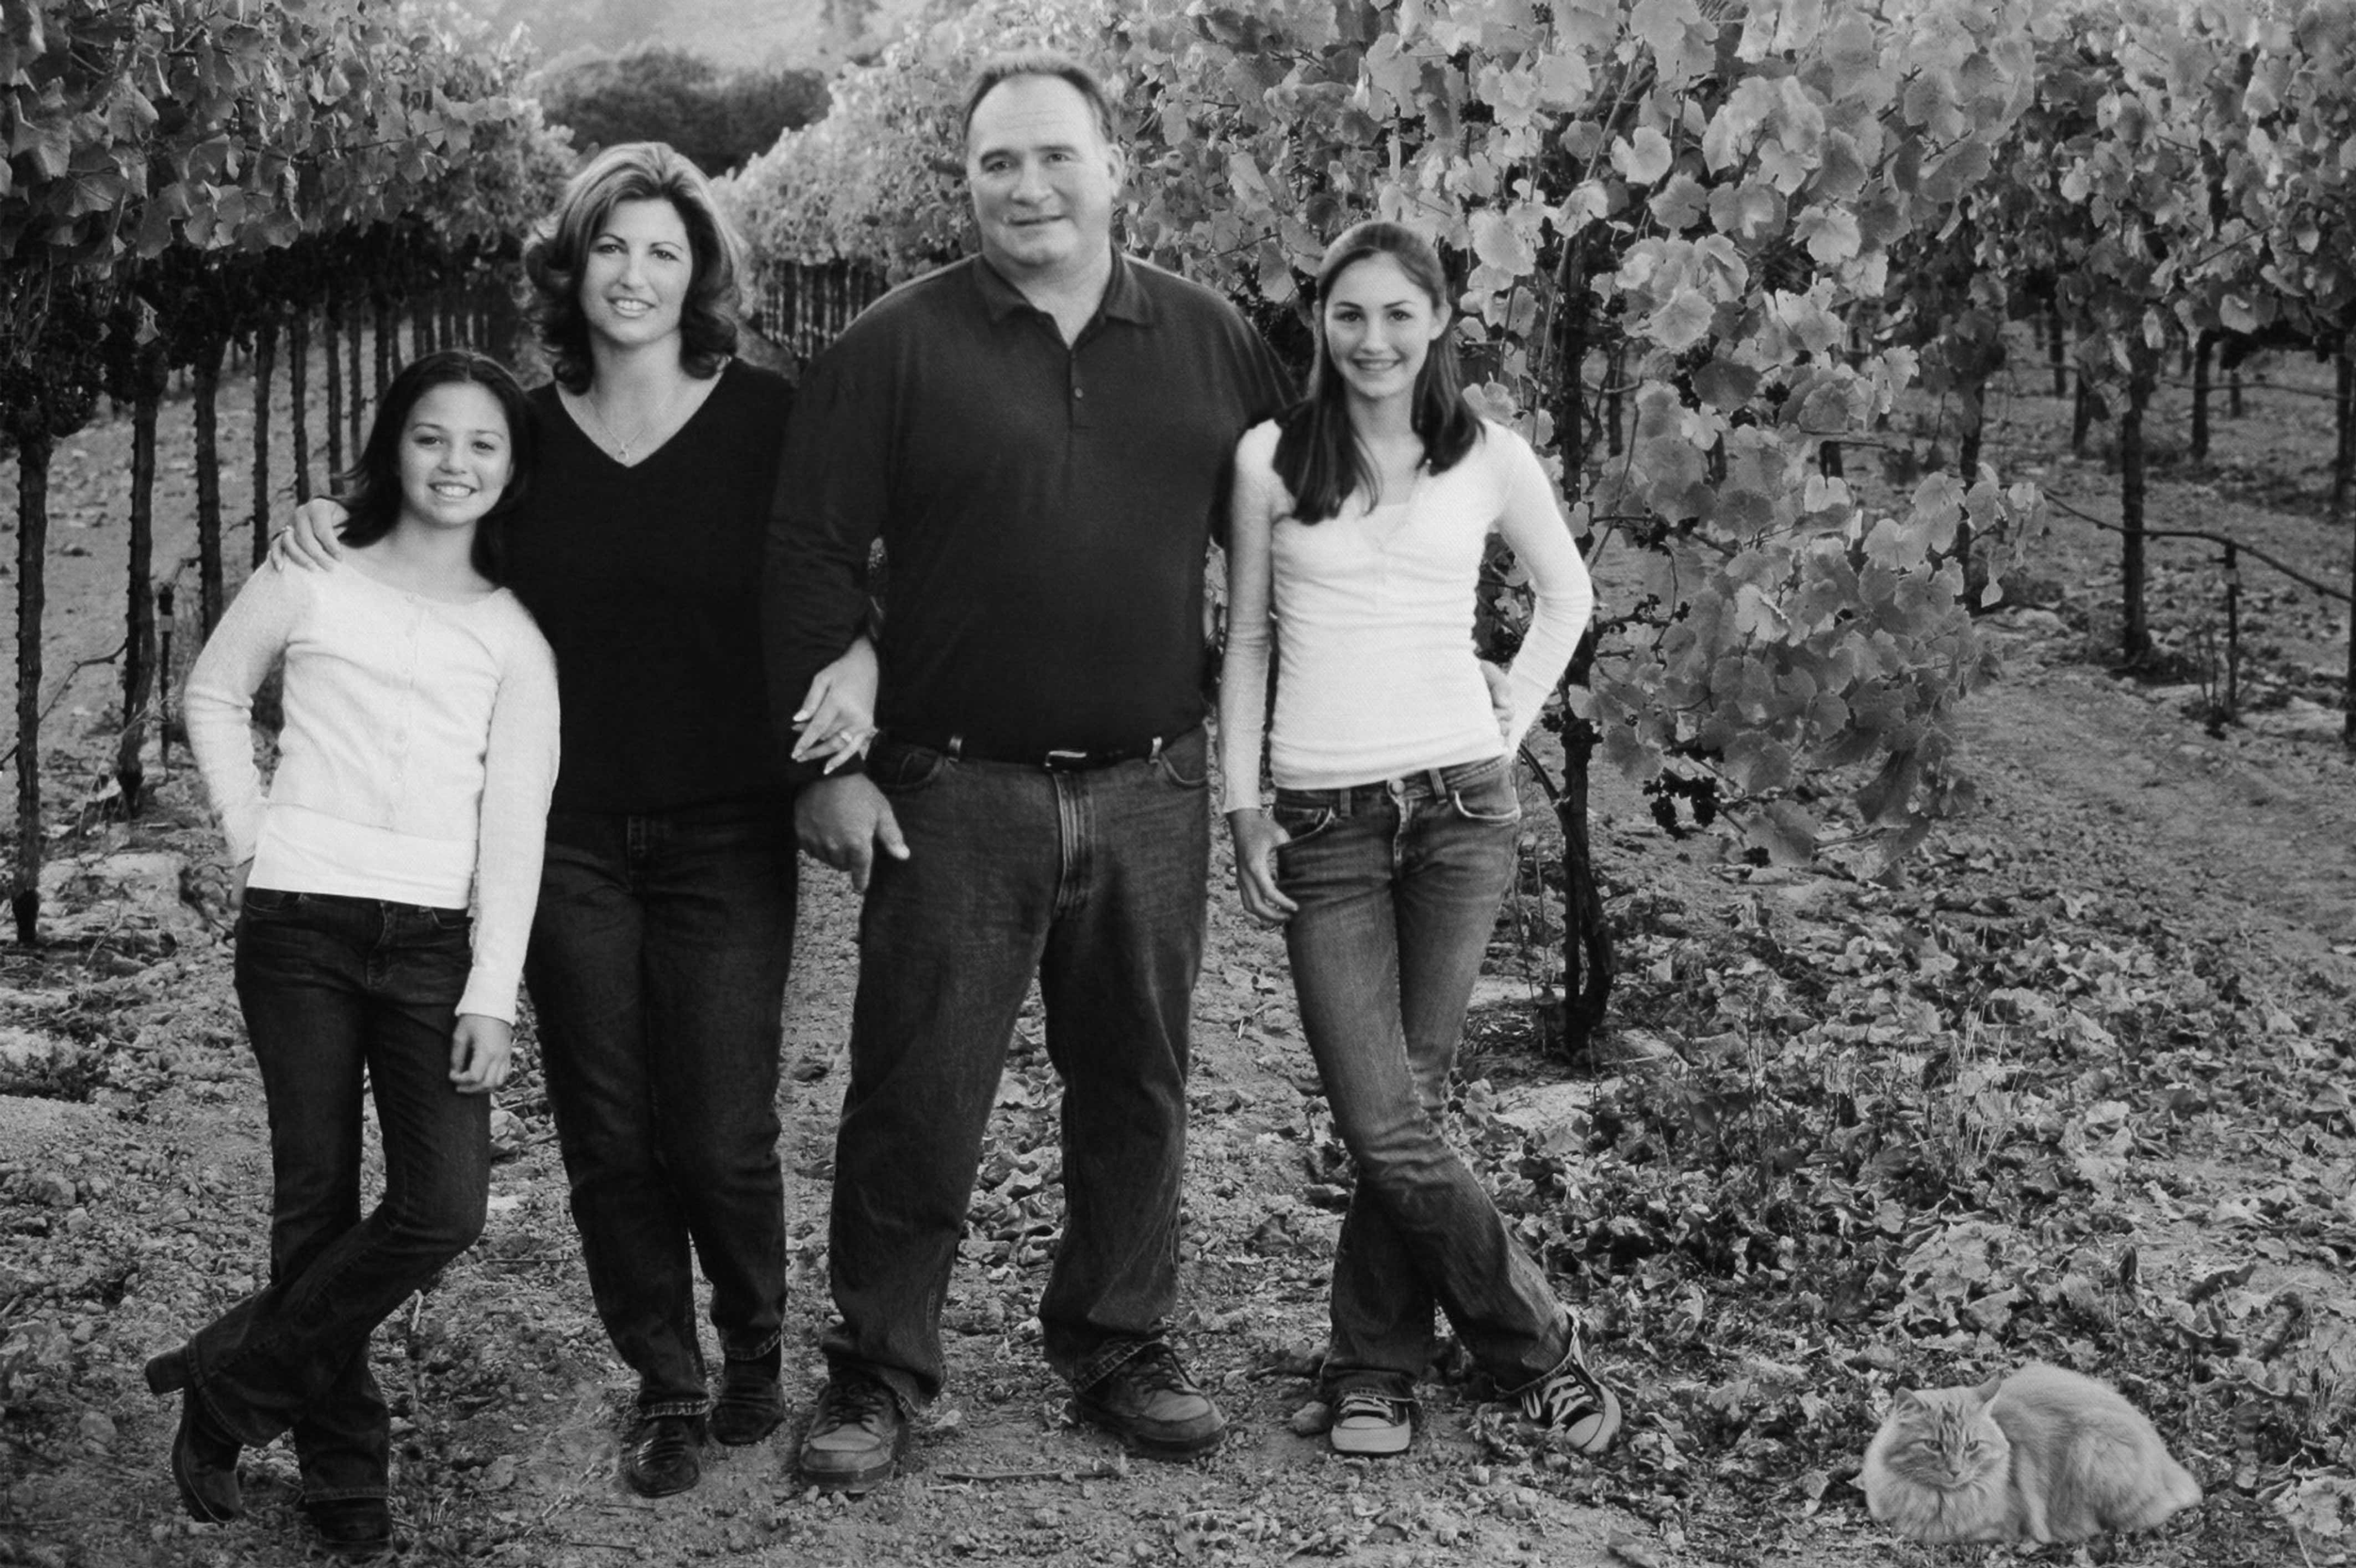 Our Story - A life of perseverance. From vegetables to grapes - this is our story.